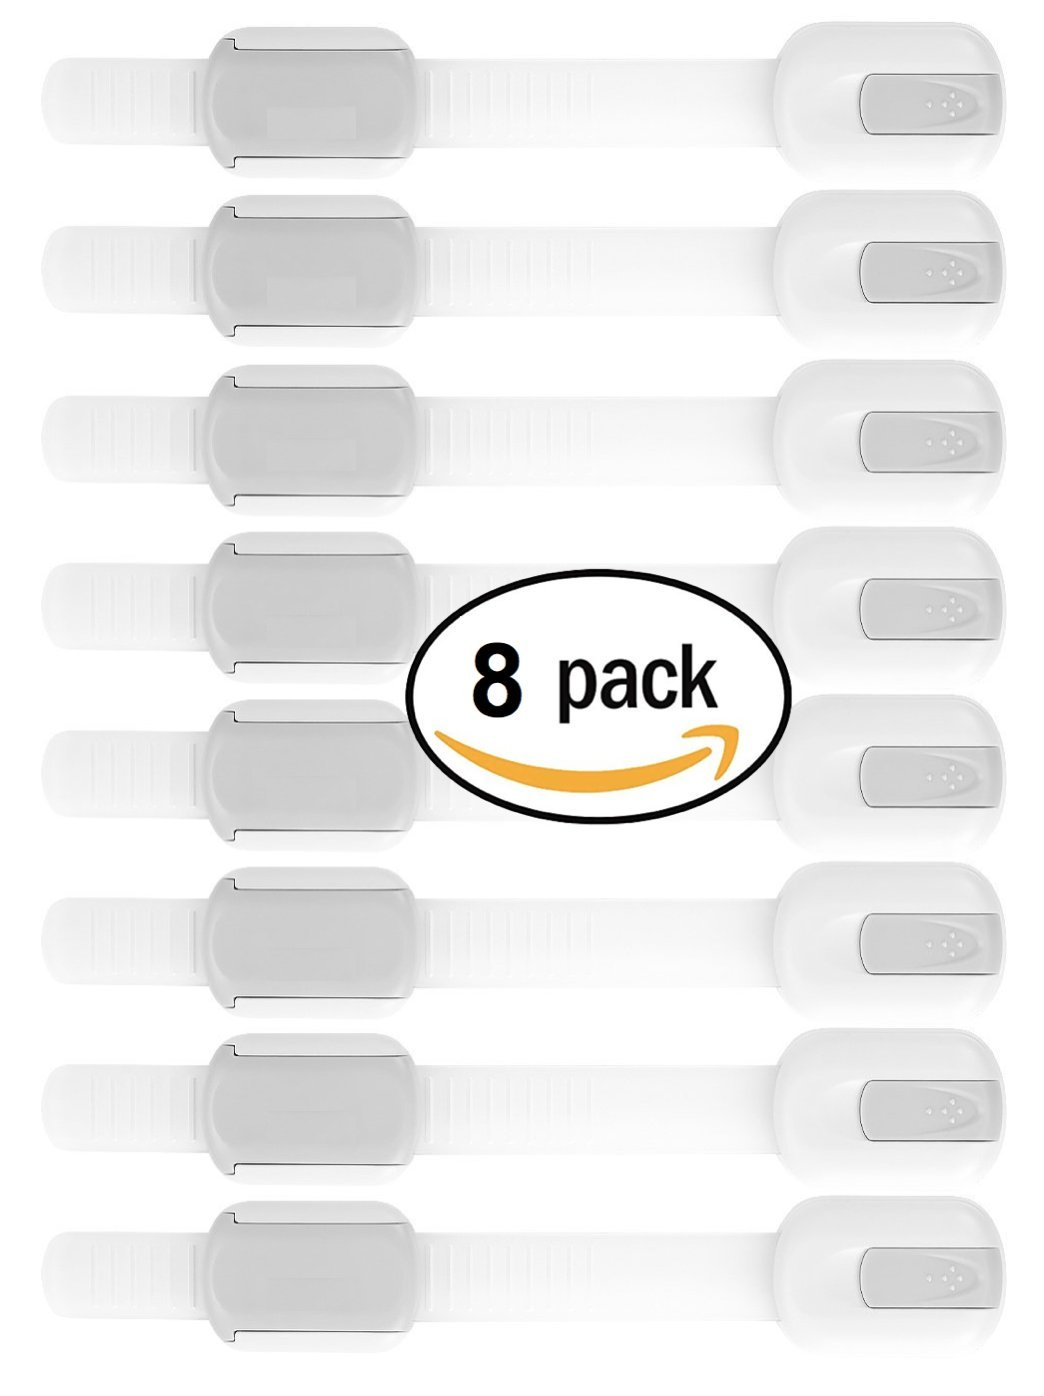 Akeekah 8 Pack Child Safety Cupboard Locks | Baby Proof Cabinets, Drawers, Appliances, Toilet Seat, Fridge and Oven | Tools Not Required | Uses 3M Adhesive with Adjustable Strap & Latch System